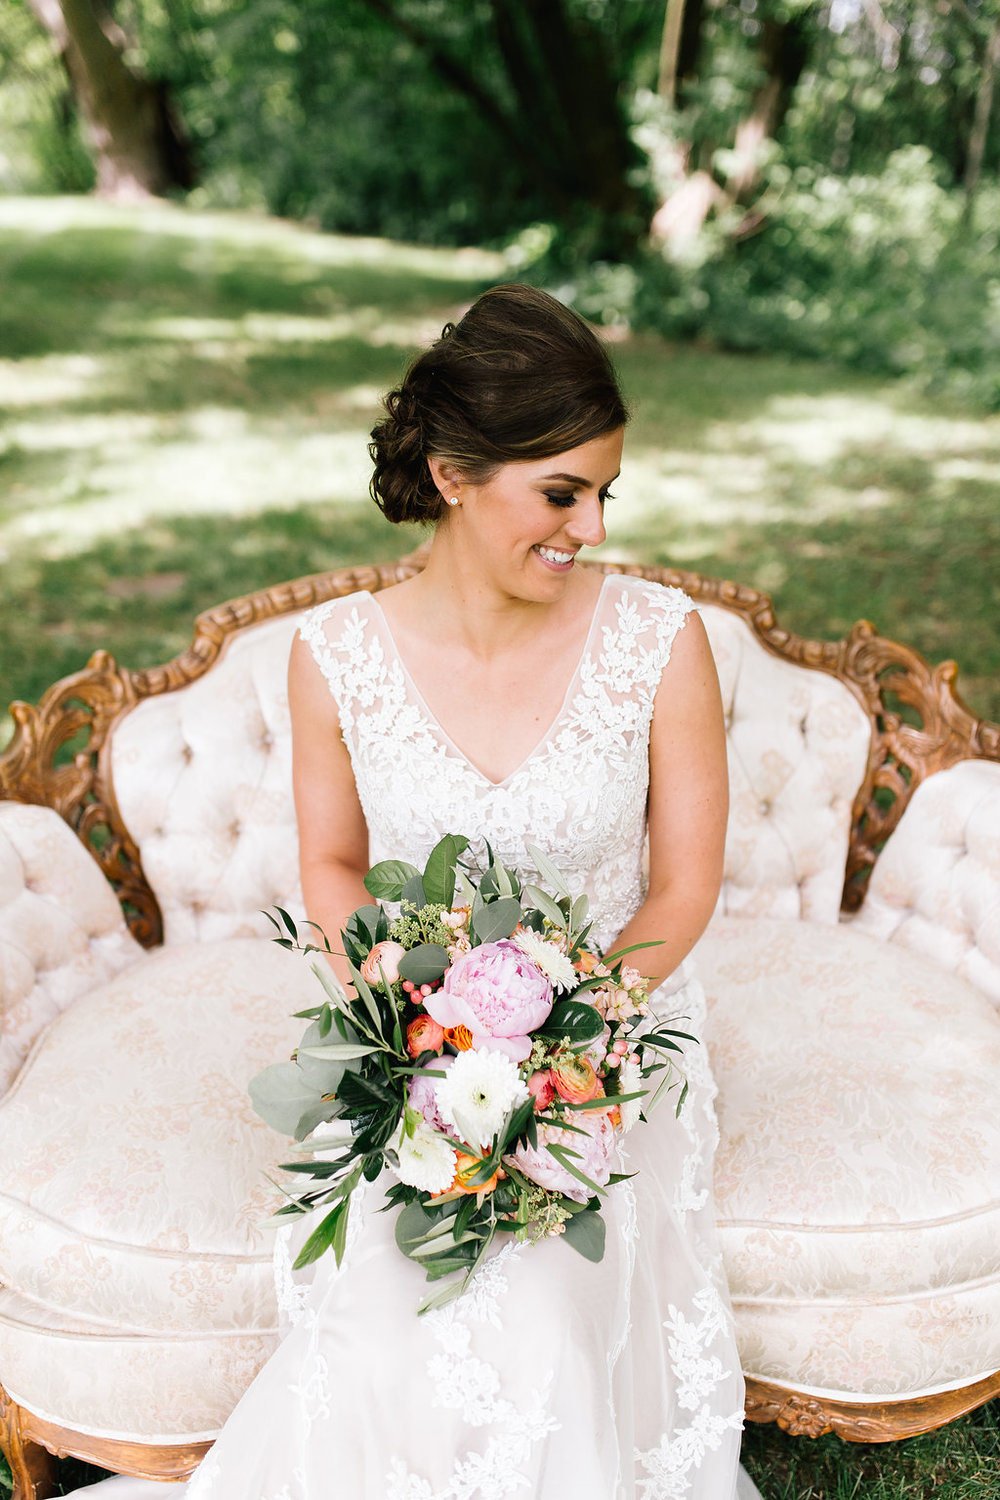 Jade + Seth Wedding | Allison Hopperstad Photography | Bloom Lake Barn | bridal portrait on vintage couch - A Vintage Touch Weddings | bridal dress with v neck lace no sleeves